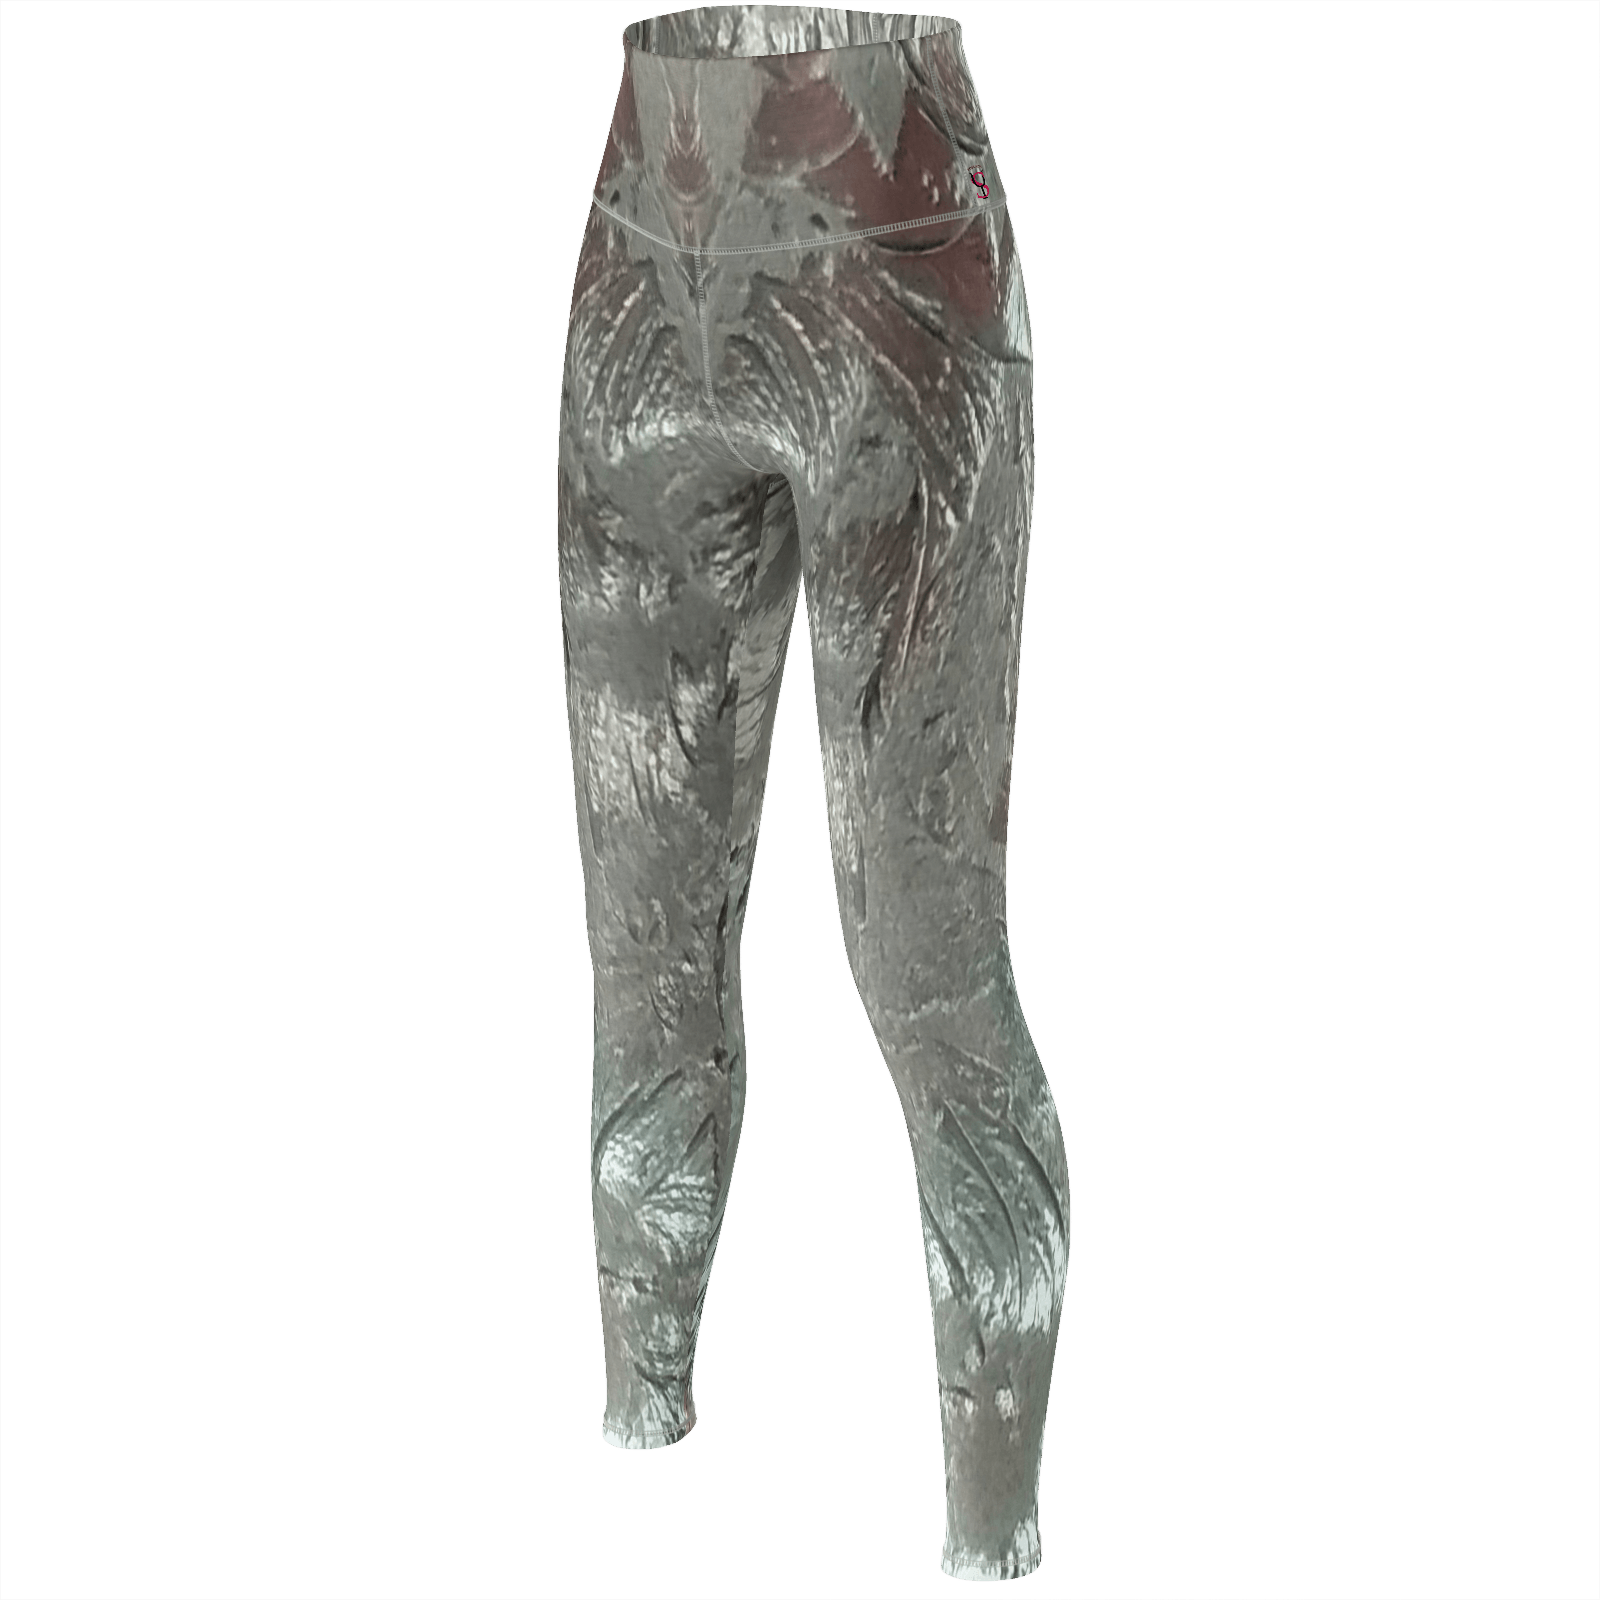 Yoga Sexy CrystalFlight1 Yoga Pants - Yoga Sexy